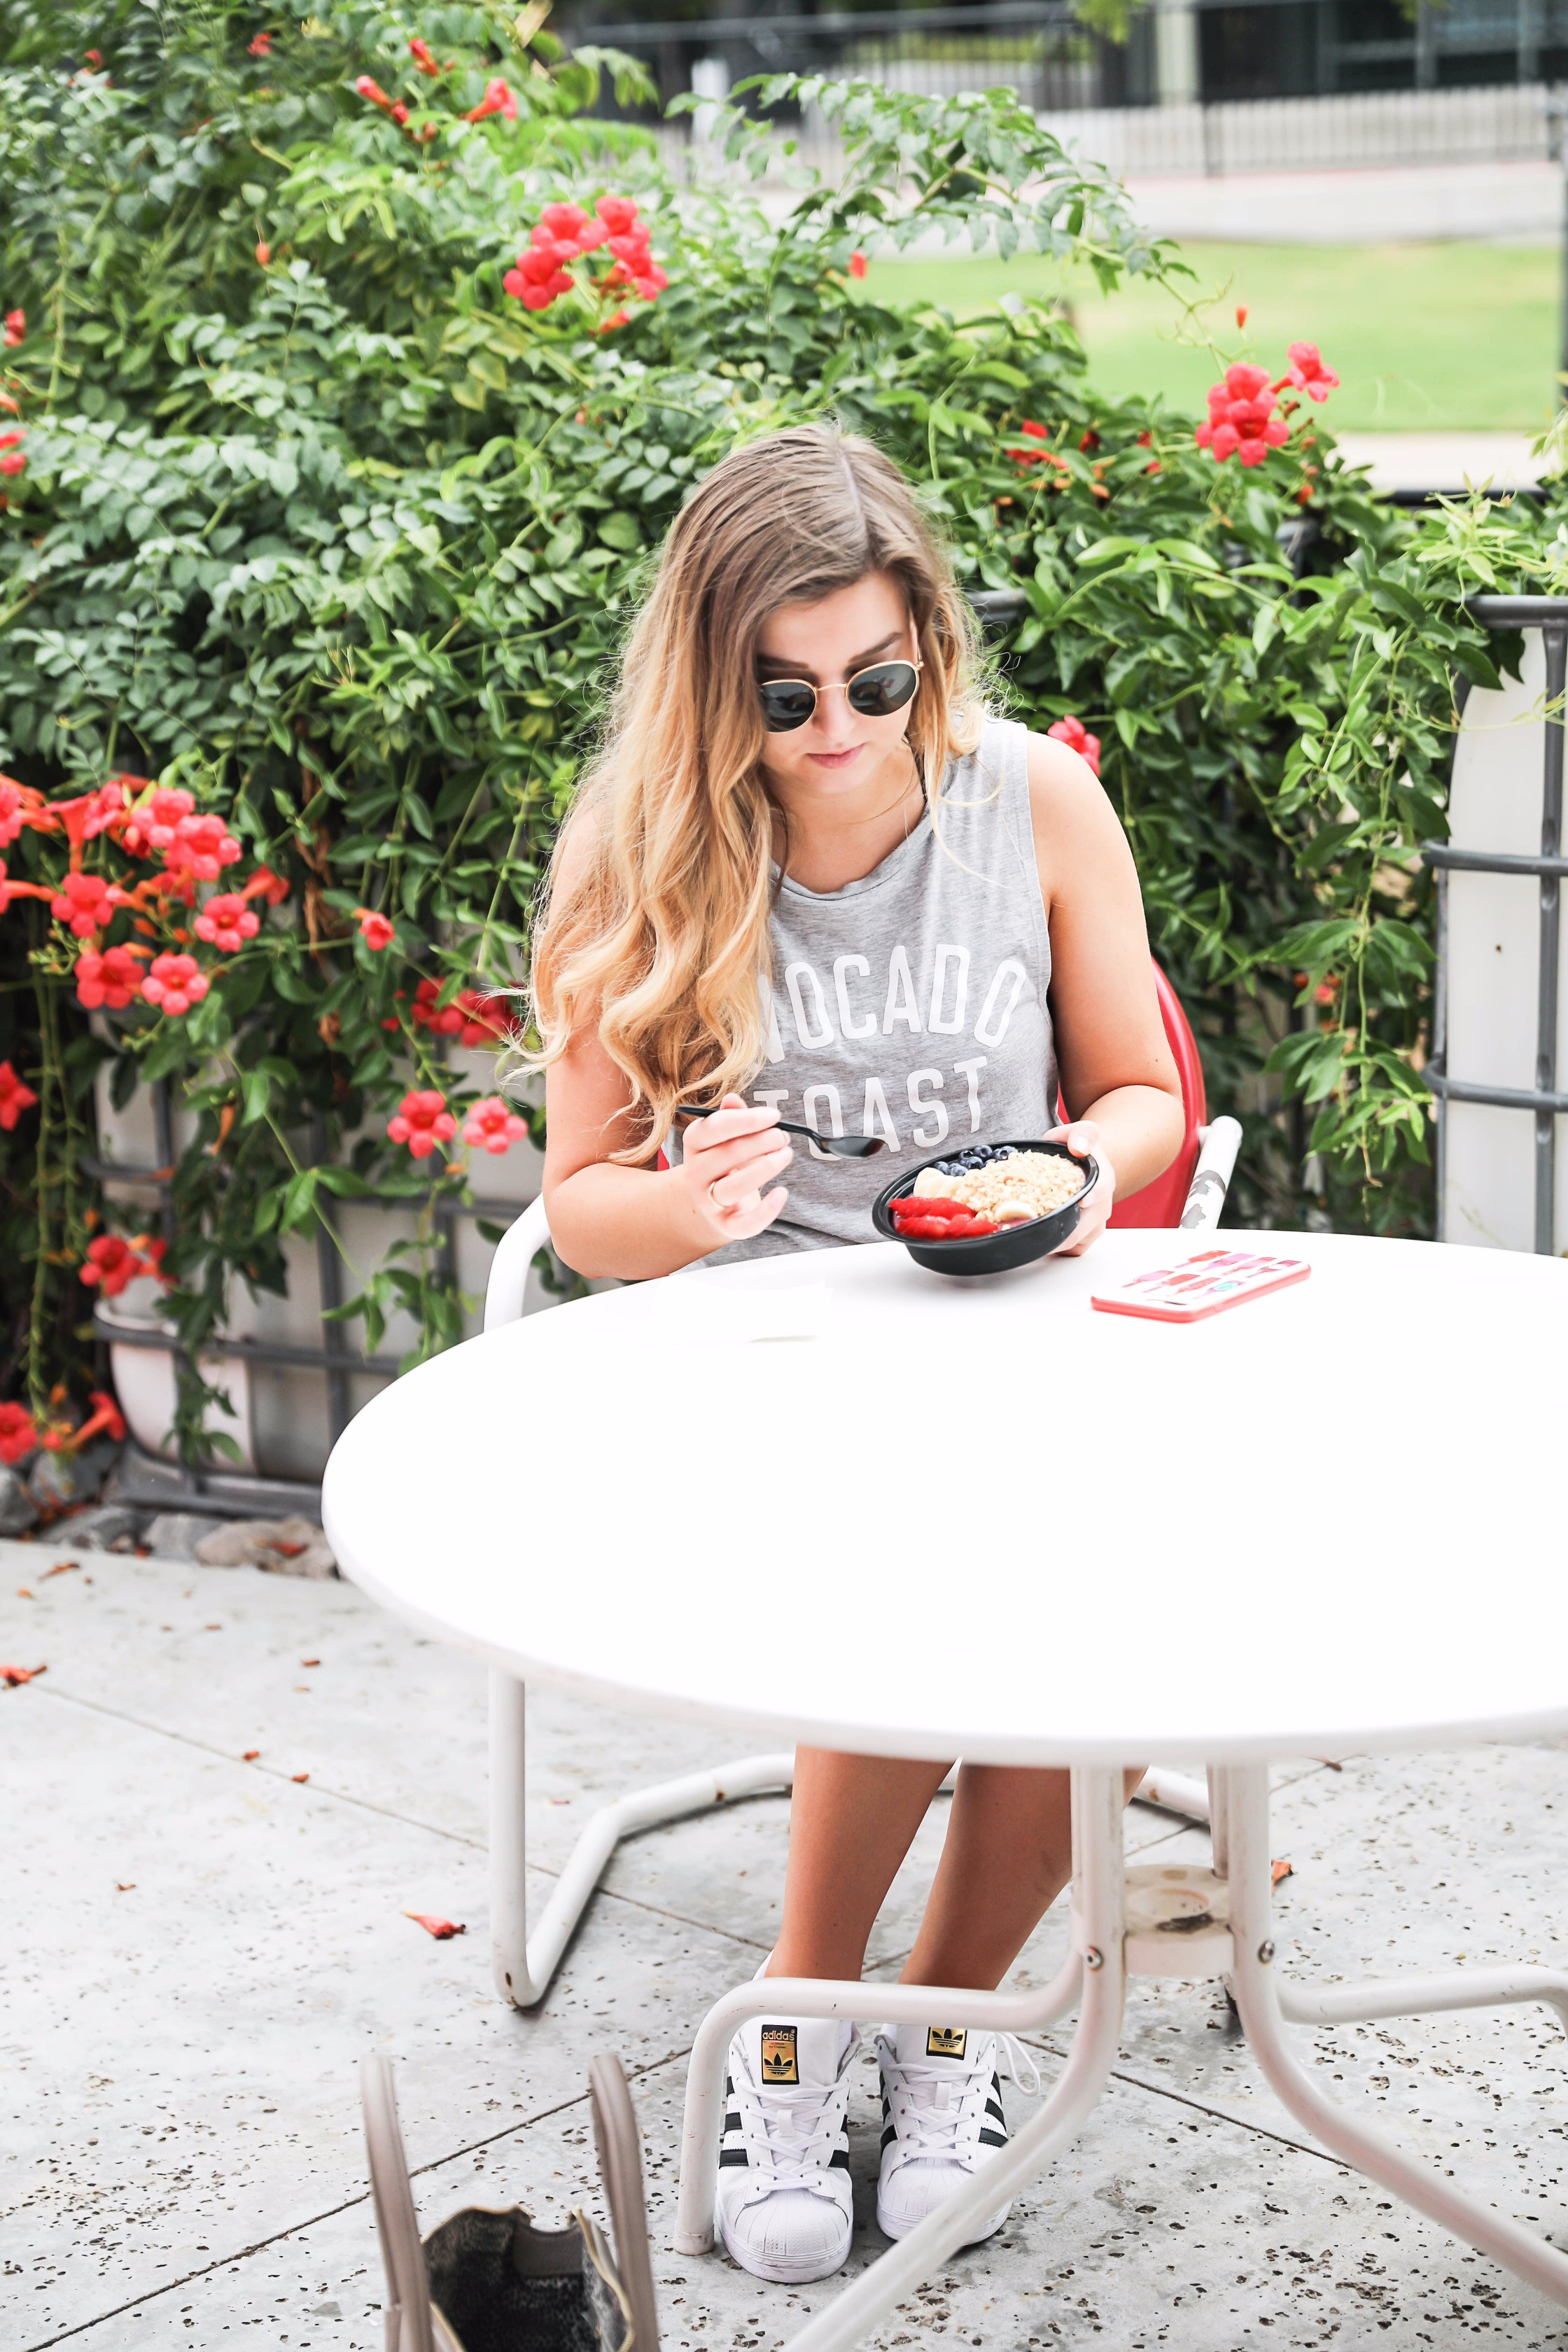 The best acai bowls, shots, and smoothies in oklahoma city! Wheeze the Juice okc meals. I am wearing the cutest avocado toast tank! By fashion blogger daily dose of charm lauren lindmar